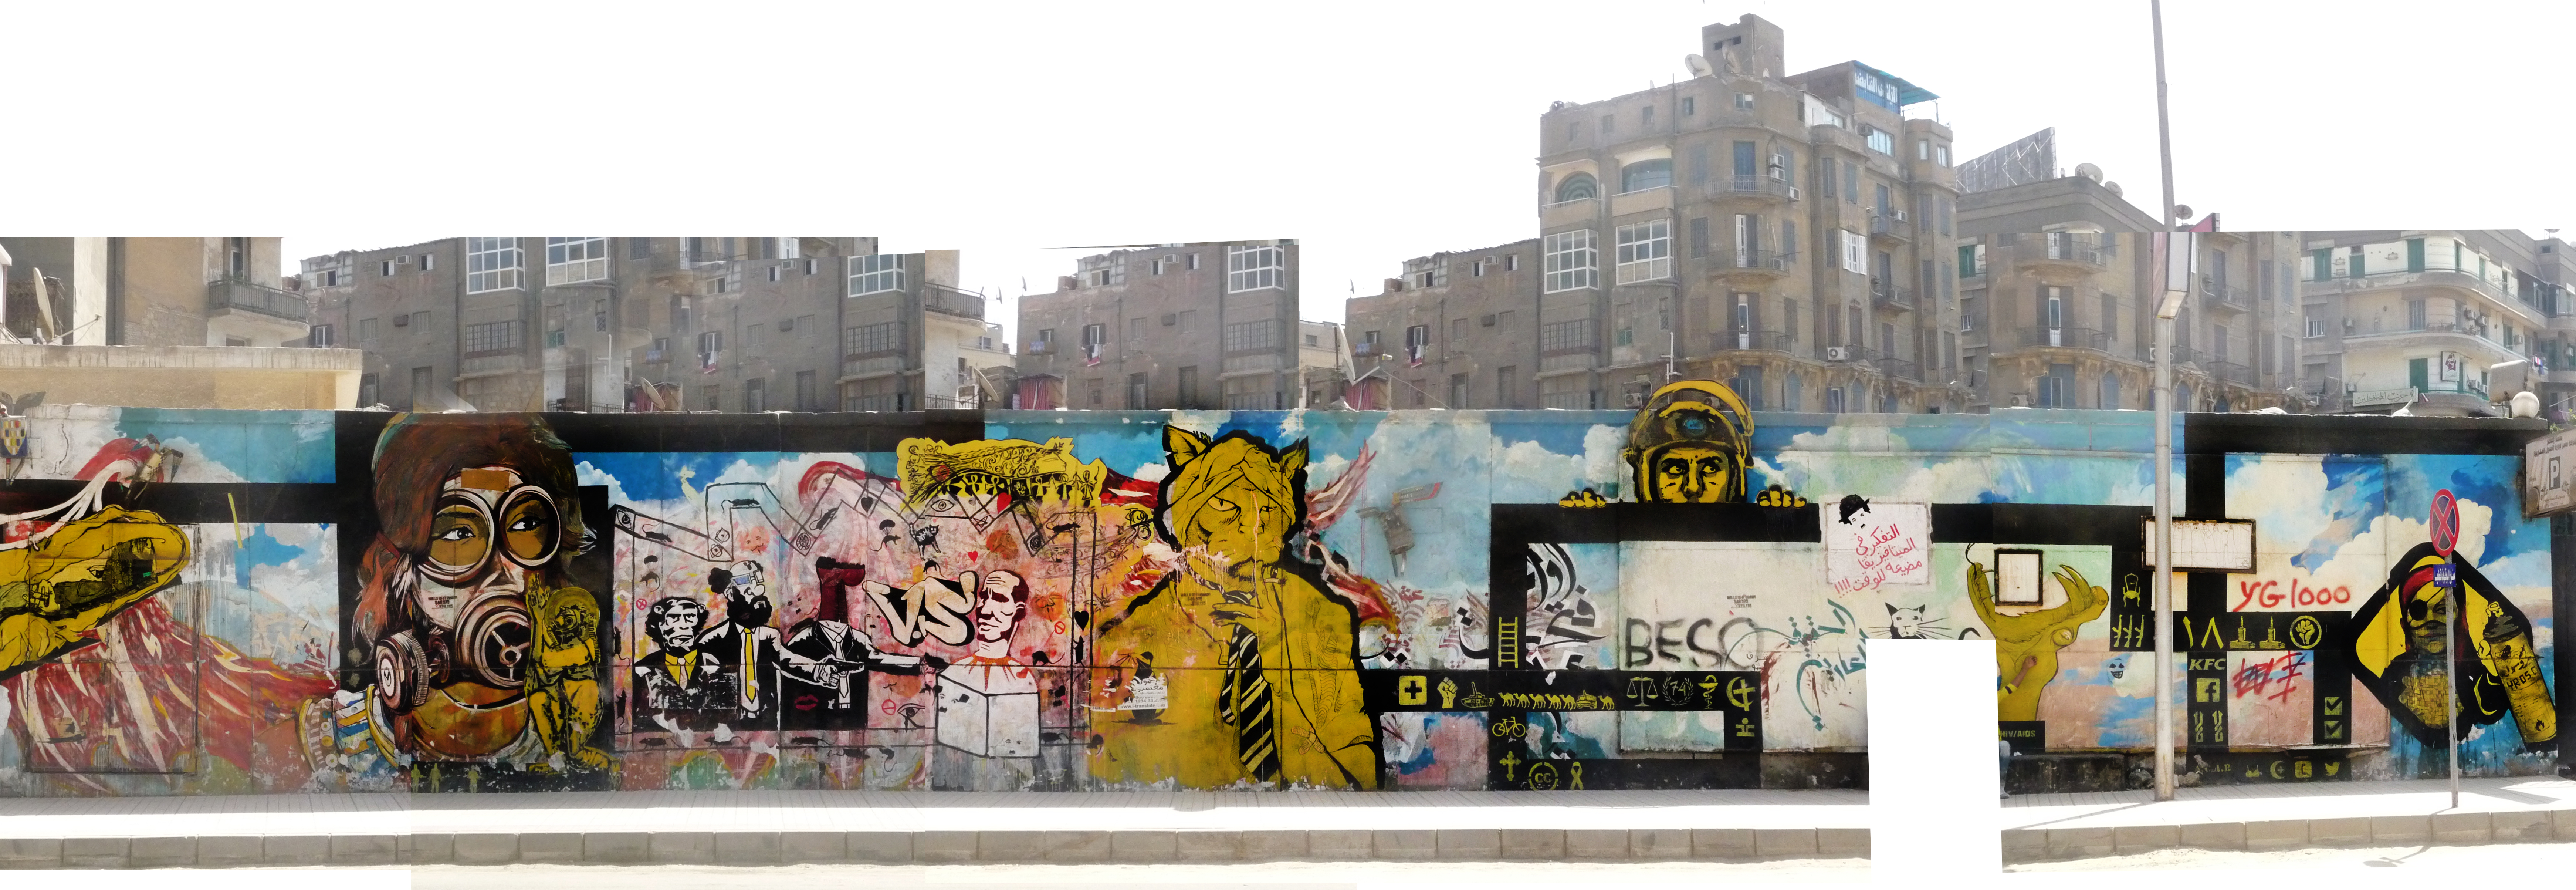 Four Times 'Egyptian Identity:' Mural collaboration as